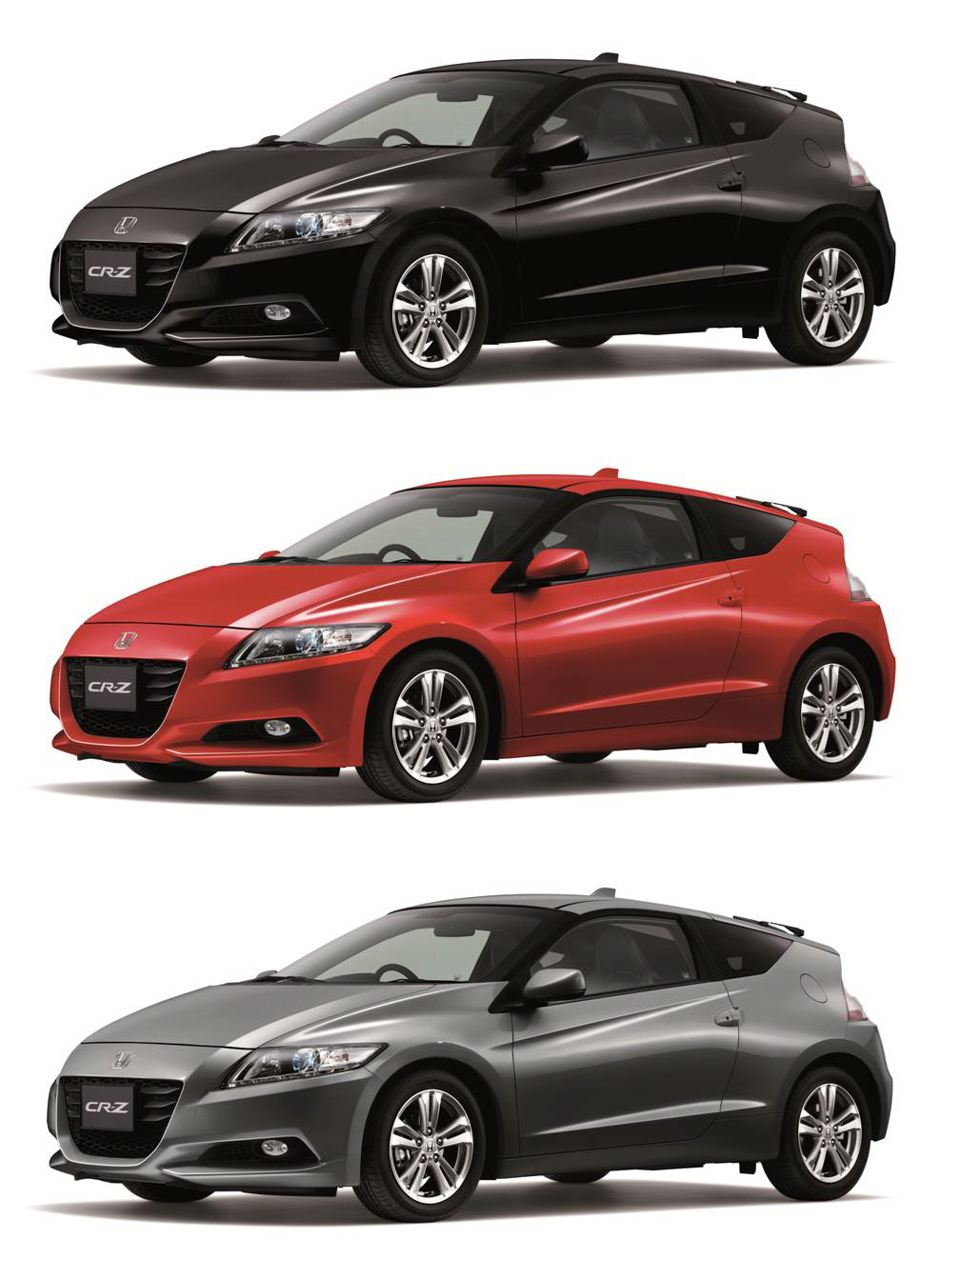 Honda Malaysia introduces three more exciting colours to the CR-Z lineup